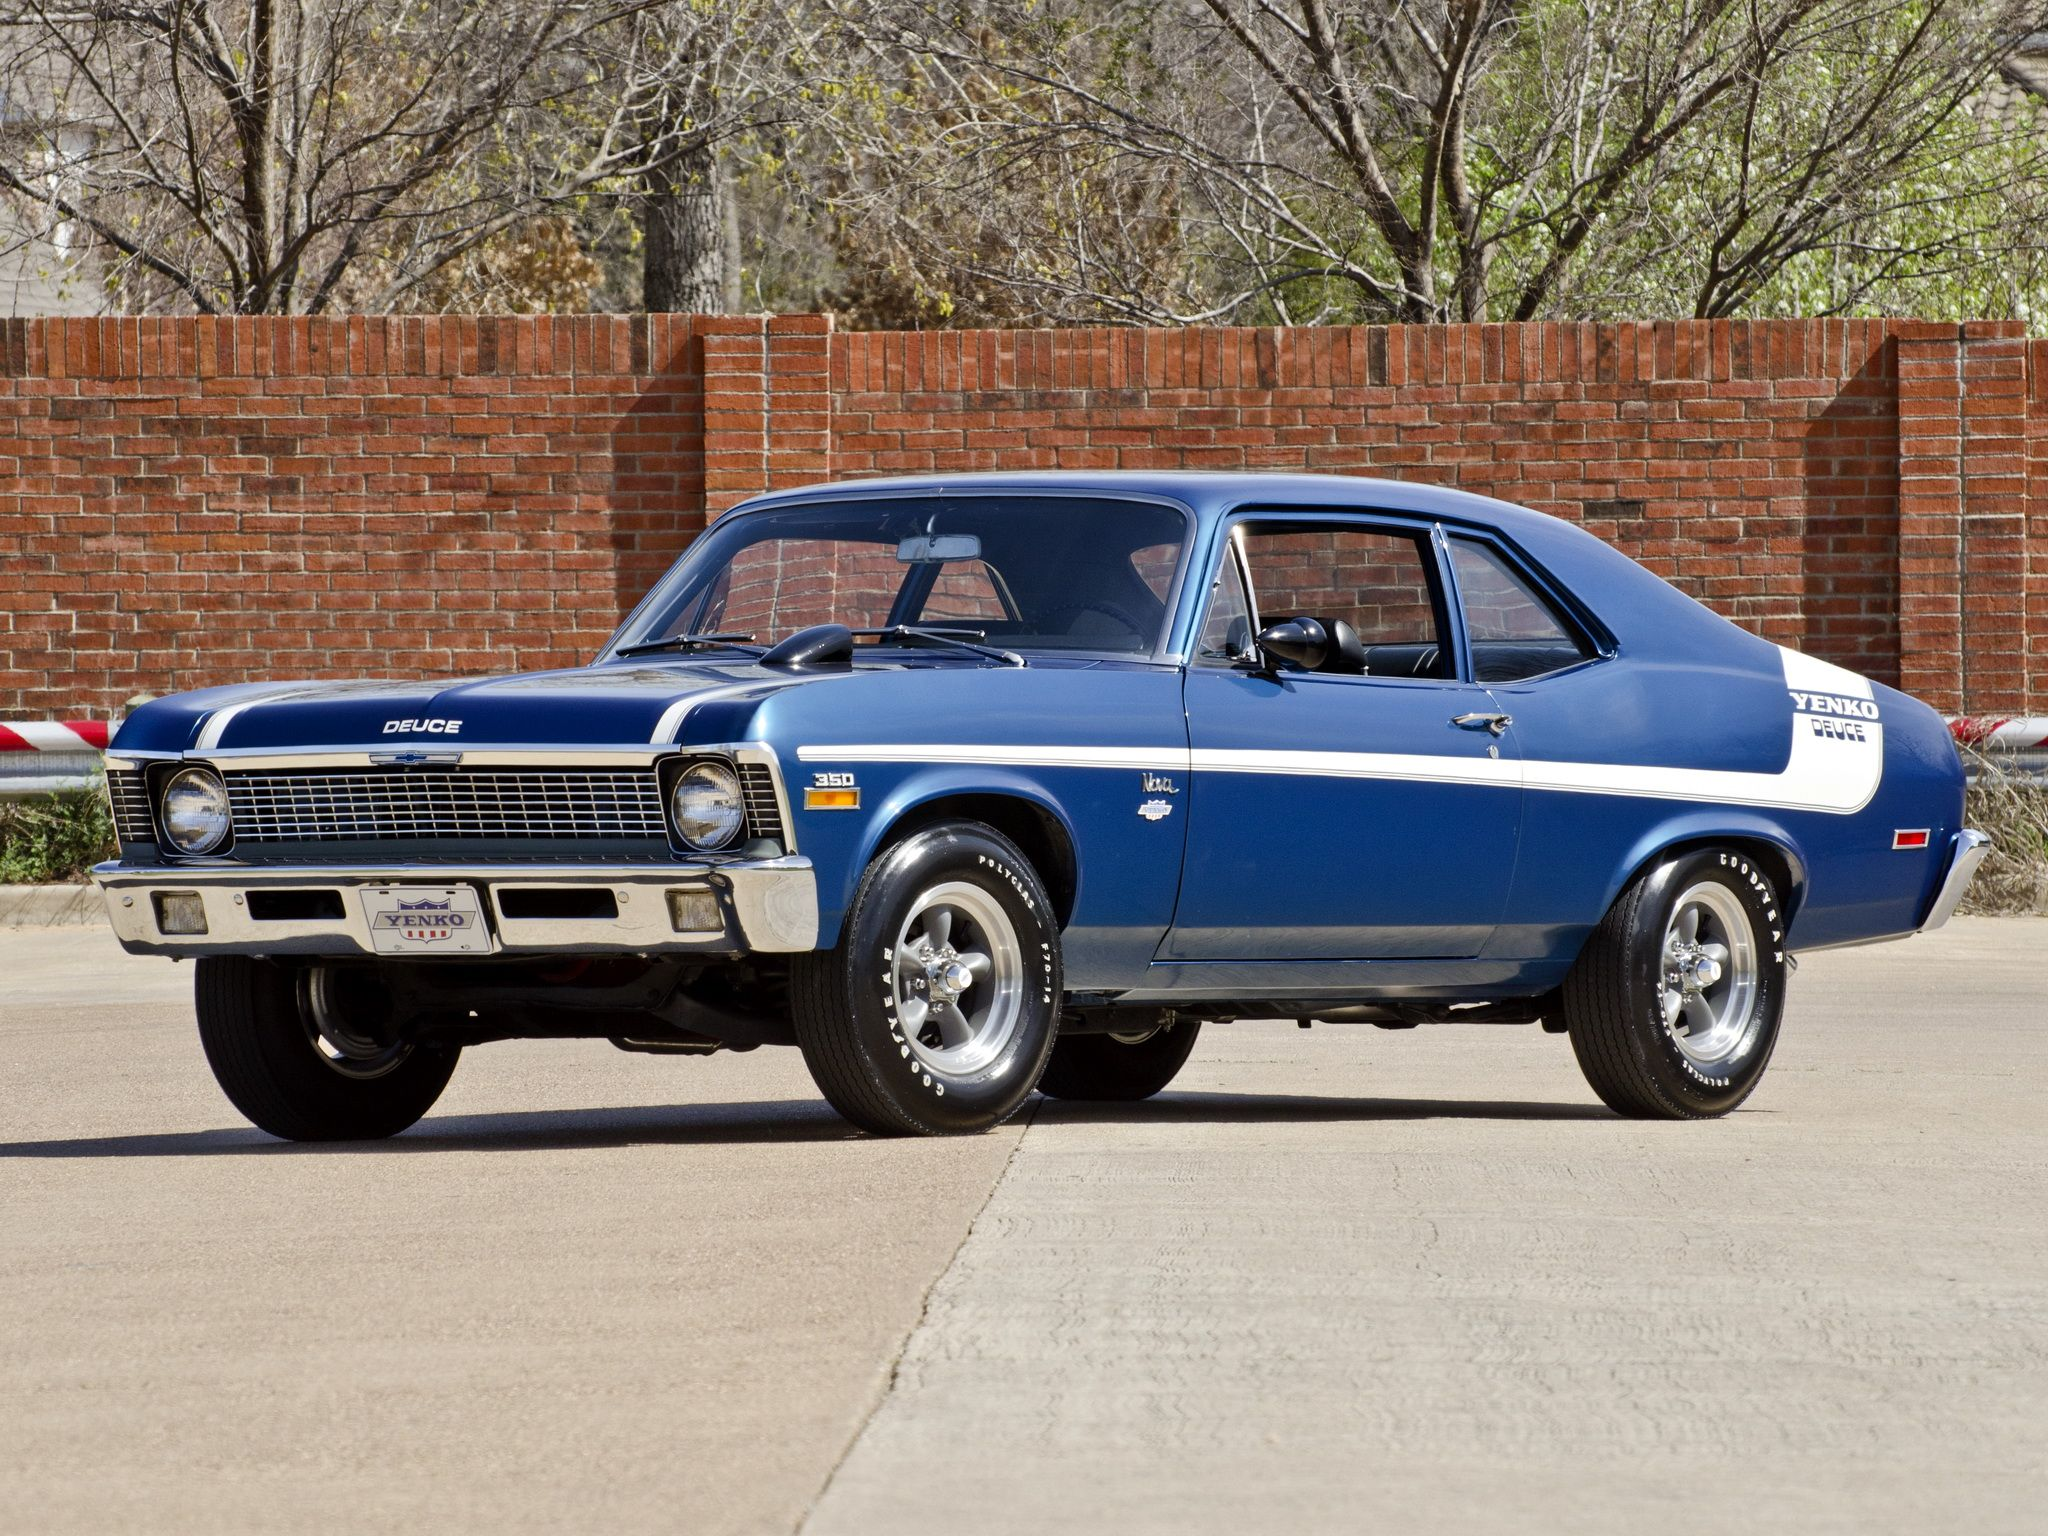 1965 chevy ii nova ss favorite cars american muscle pinterest - Chevy Nova Muscle Car Archives Cars With Muscles